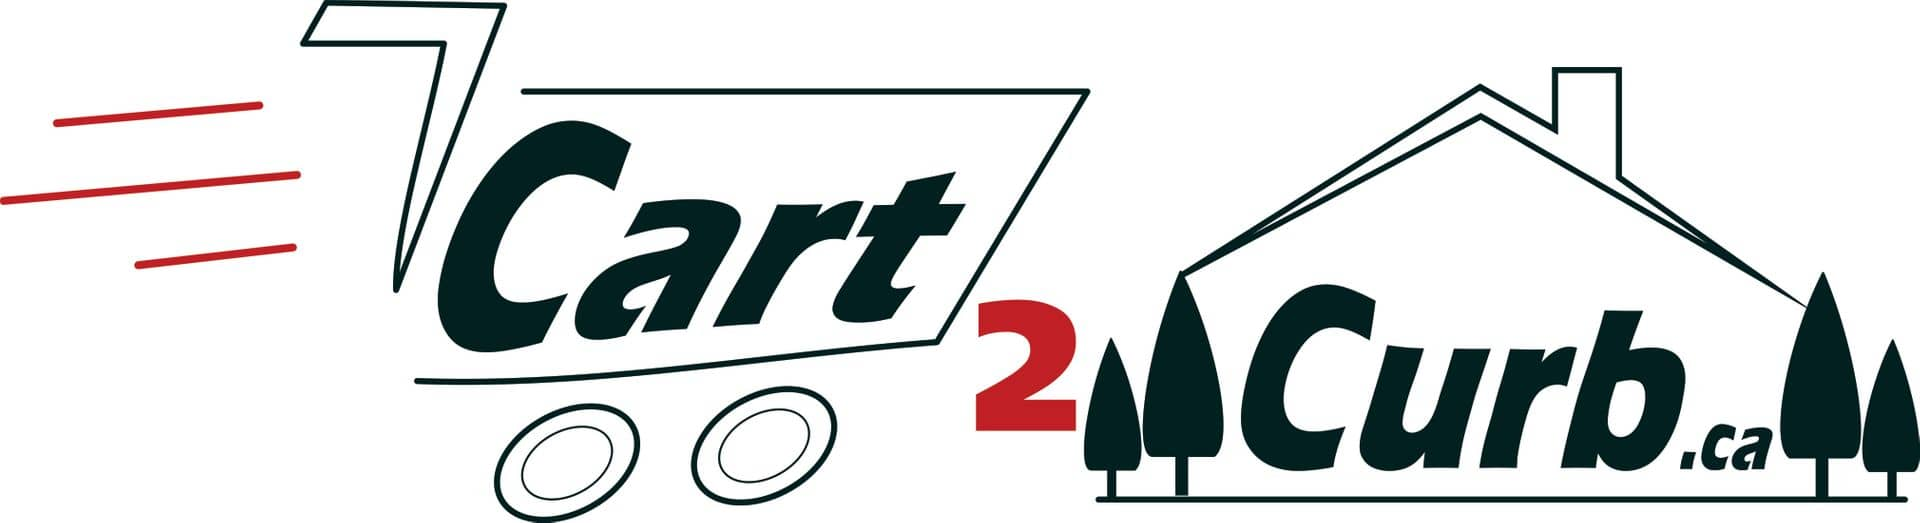 Cart2curb.com logo